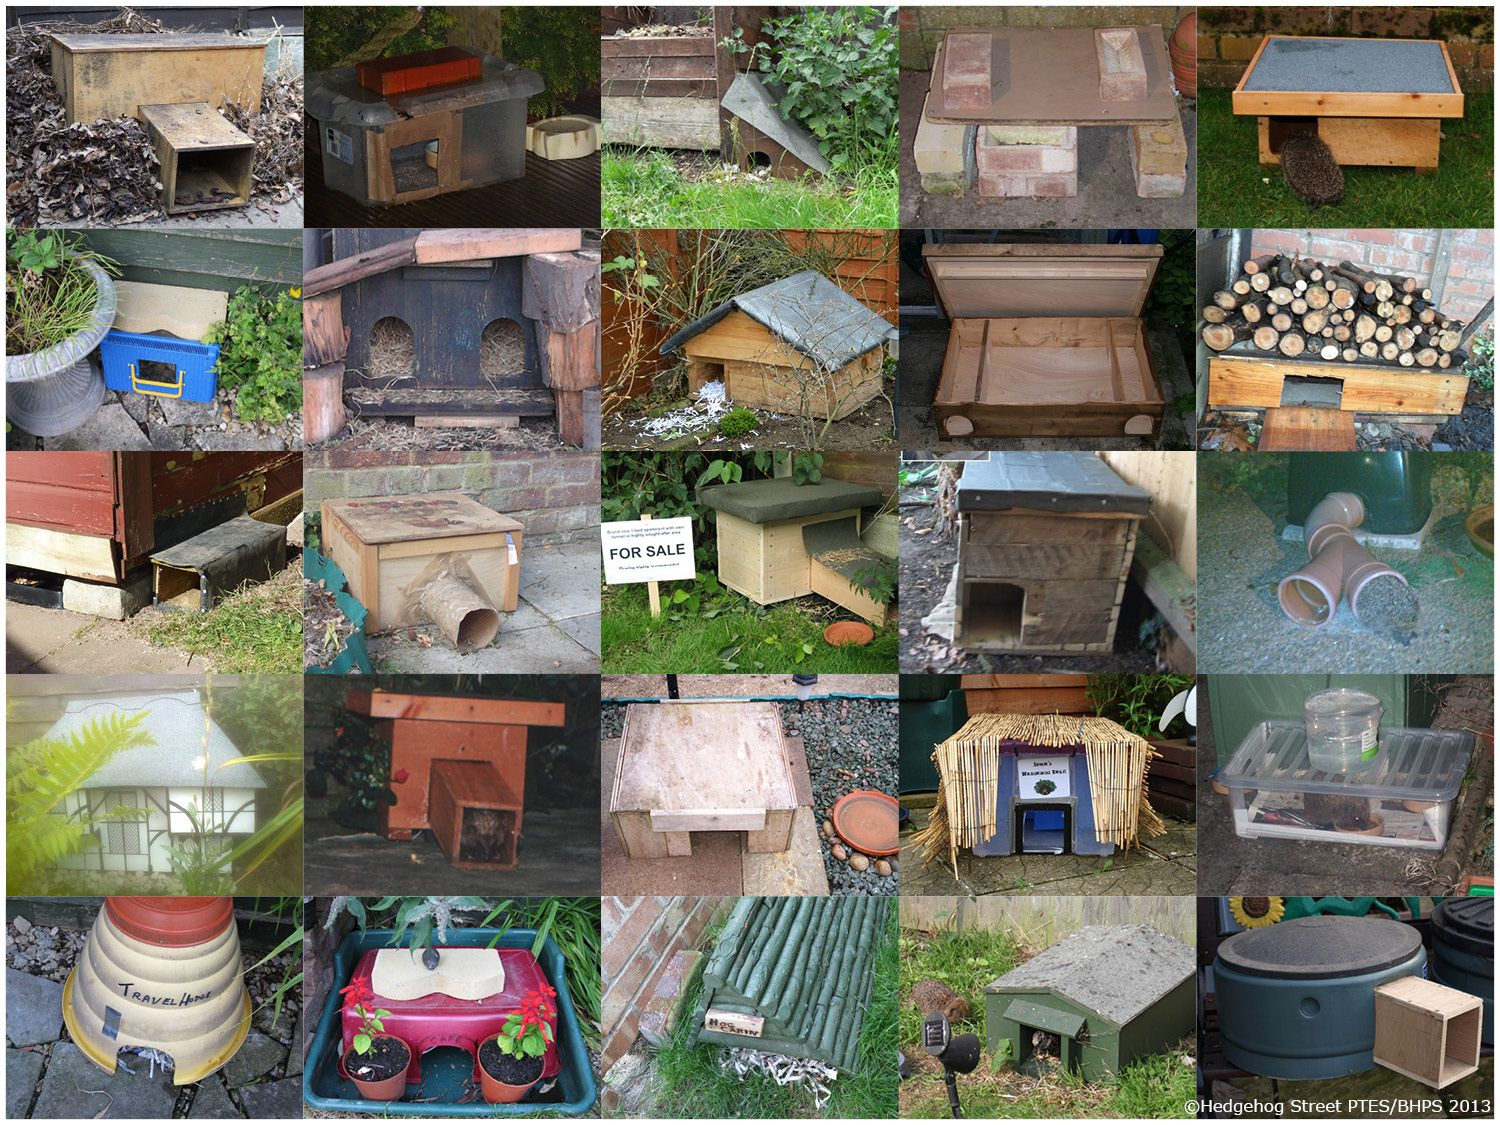 A selection of homes and feeding stations uploaded onto the galleries of Hedgehog Street by proud Hedgehog Champions